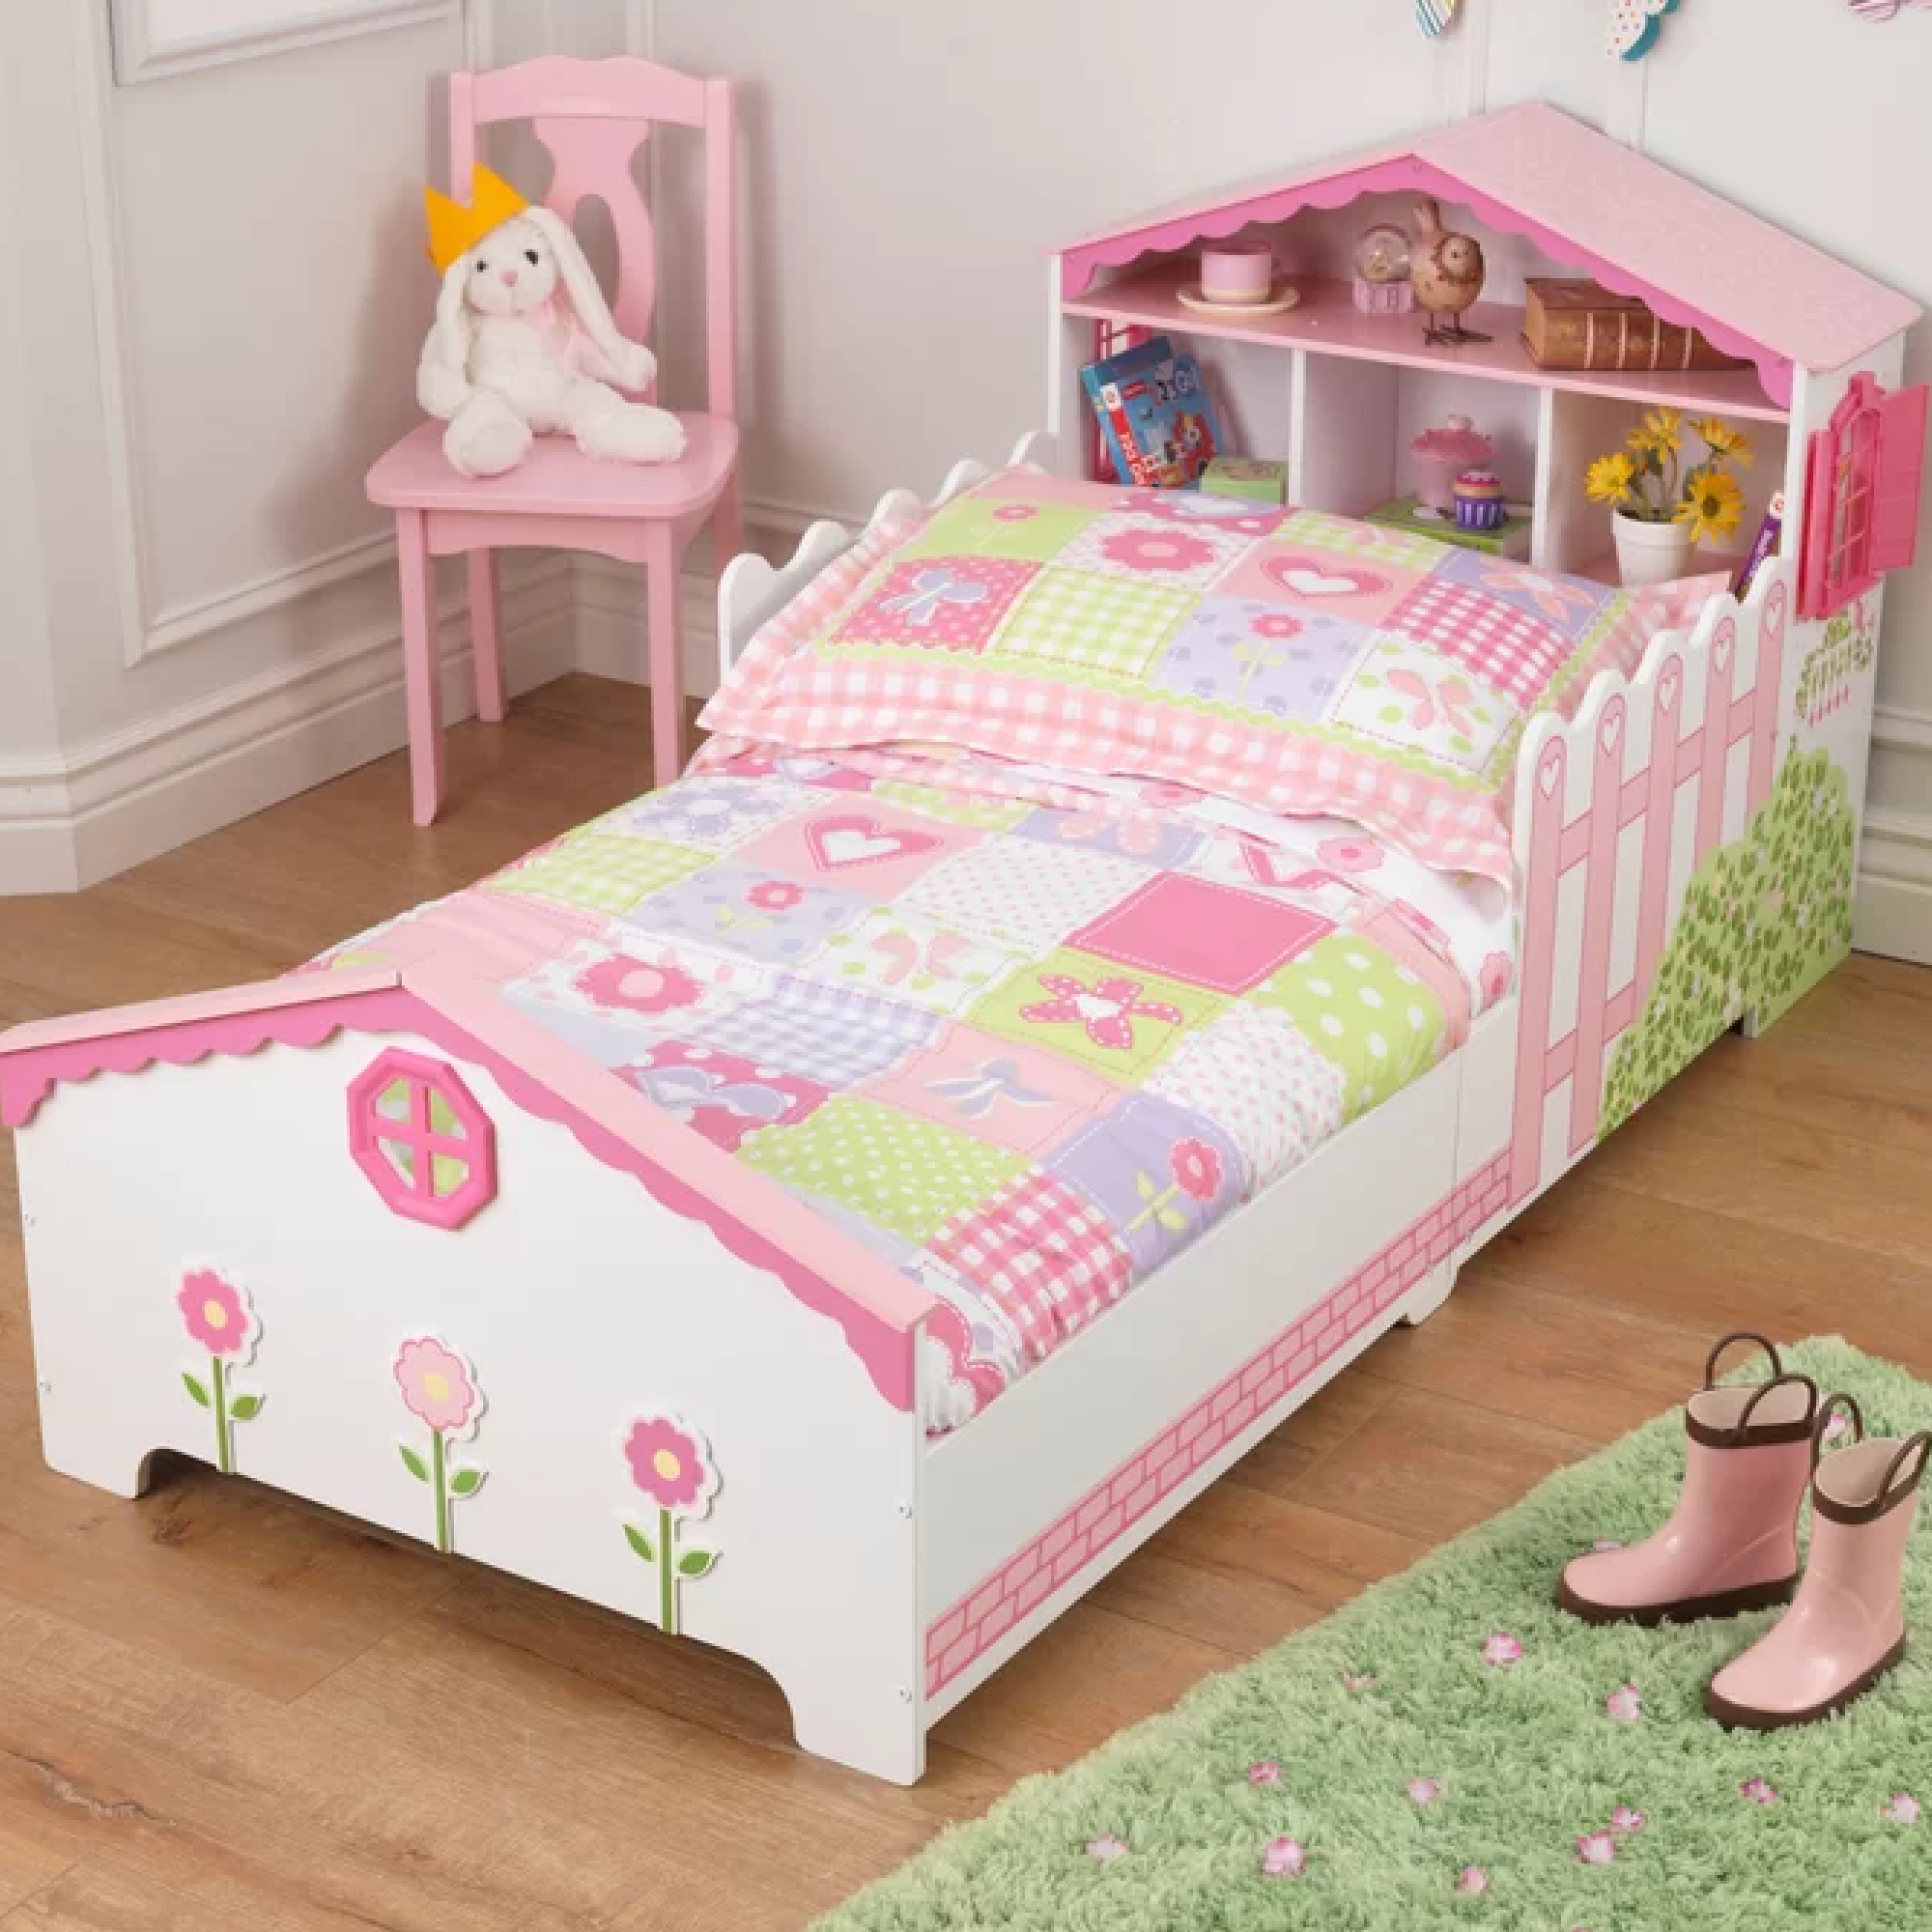 Kidkraft Dollhouse Toddler Bed Baby And Child Store